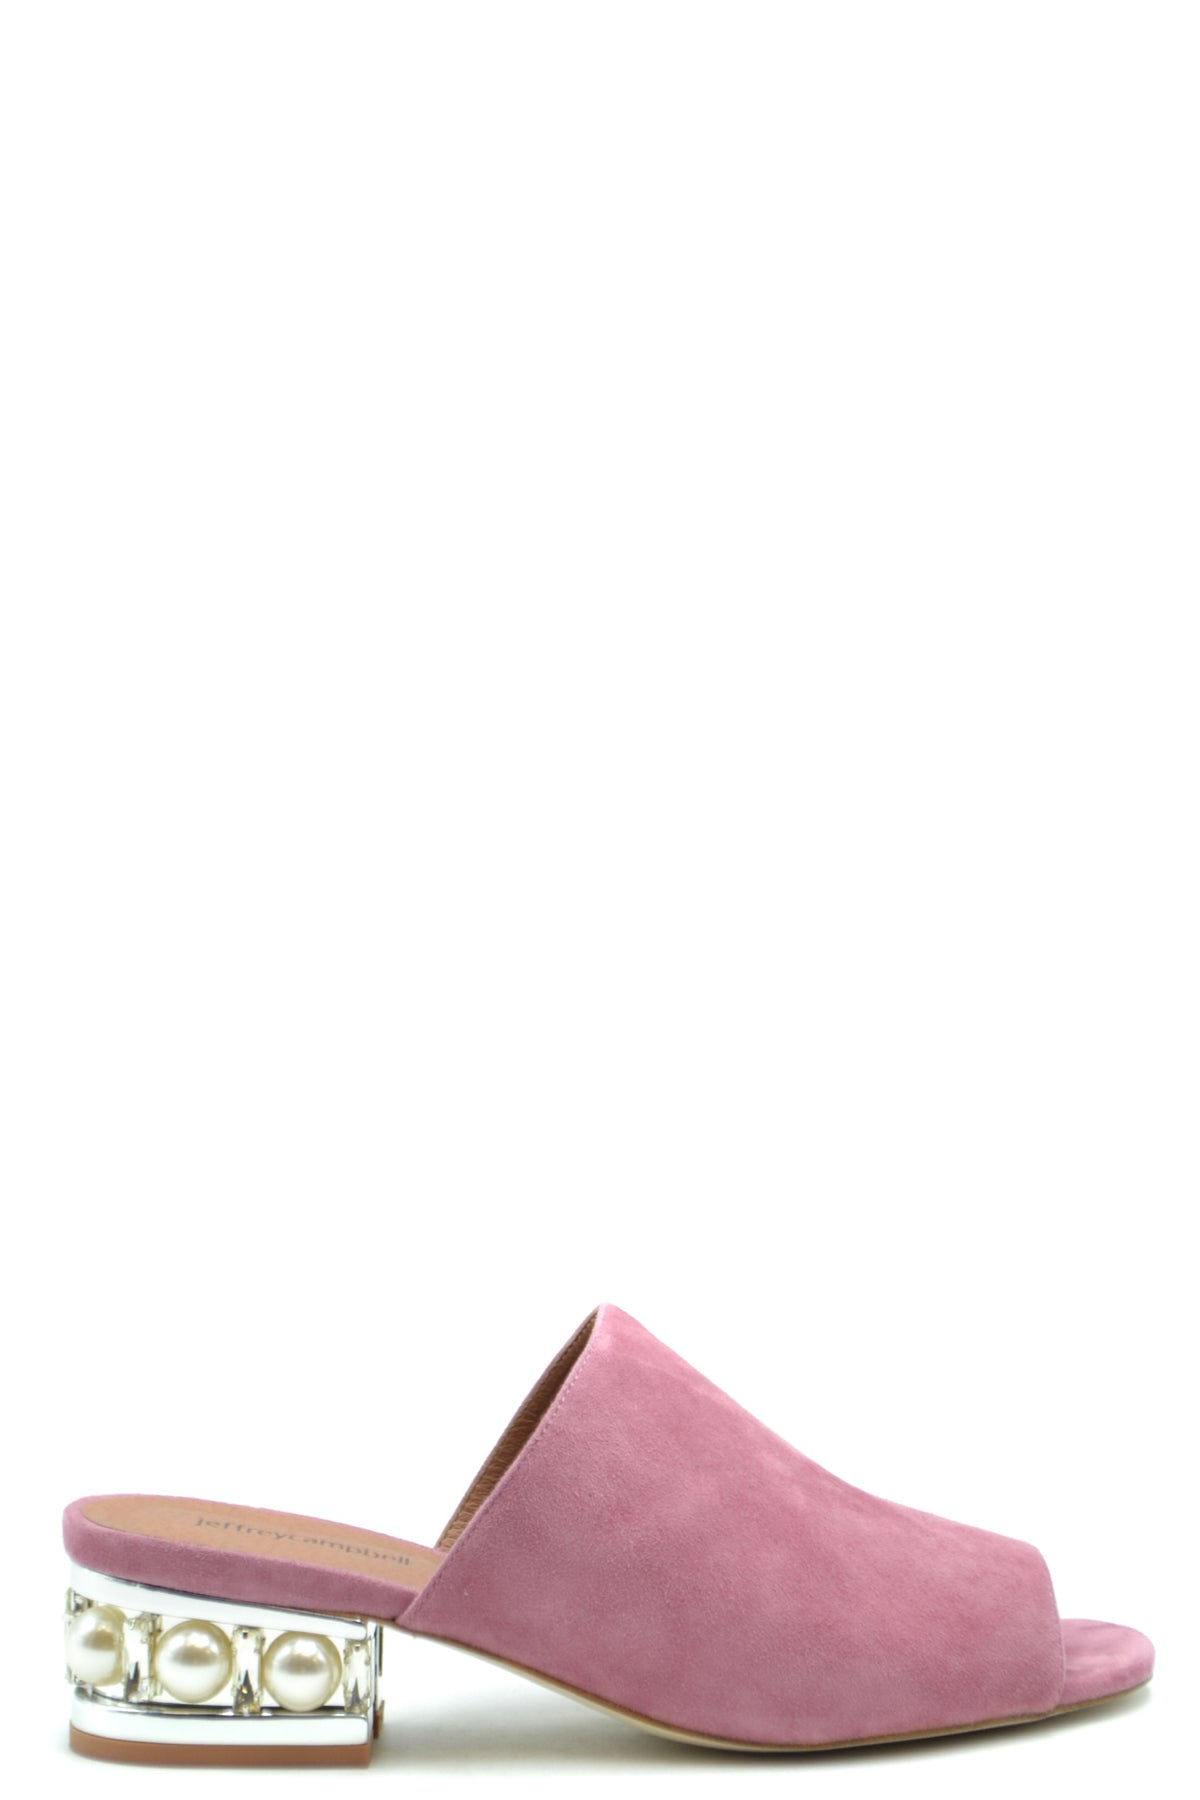 Shoes Jeffrey Campbell-Sandals - WOMAN-36-Product Details Type Of Accessory: ShoesTerms: New With LabelHeel'S Height: 4.5 CmMain Color: PinkGender: WomanMade In: ChinaManufacturer Part Number: Arcita-MpsSize: EuYear: 2018Season: Spring / SummerComposition: Chamois 100%-Keyomi-Sook